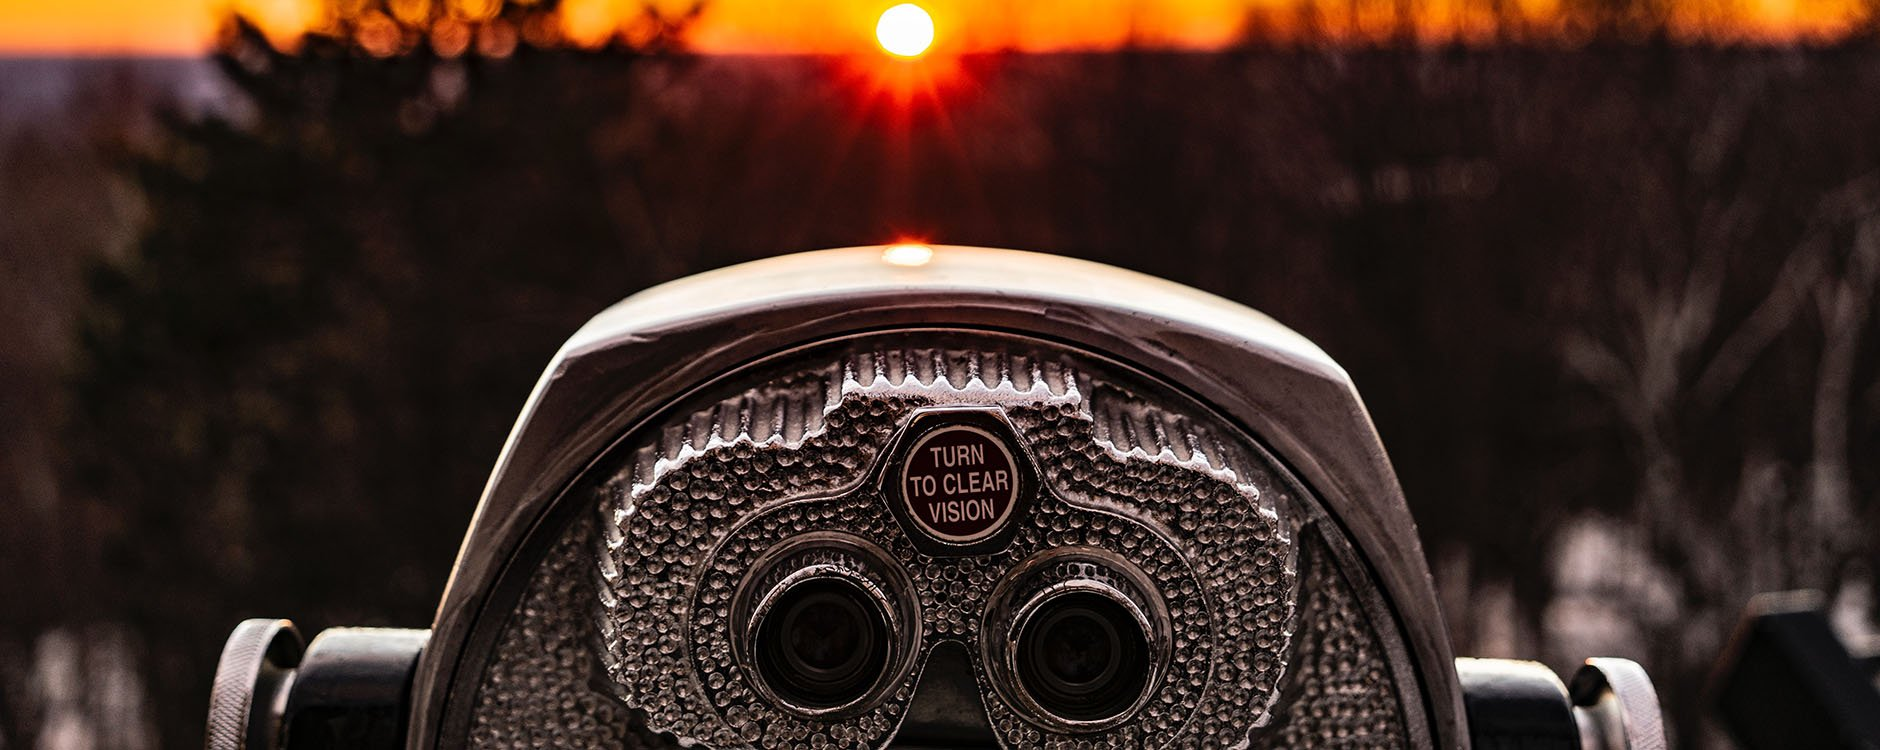 Viewfinder with sunset - Banner